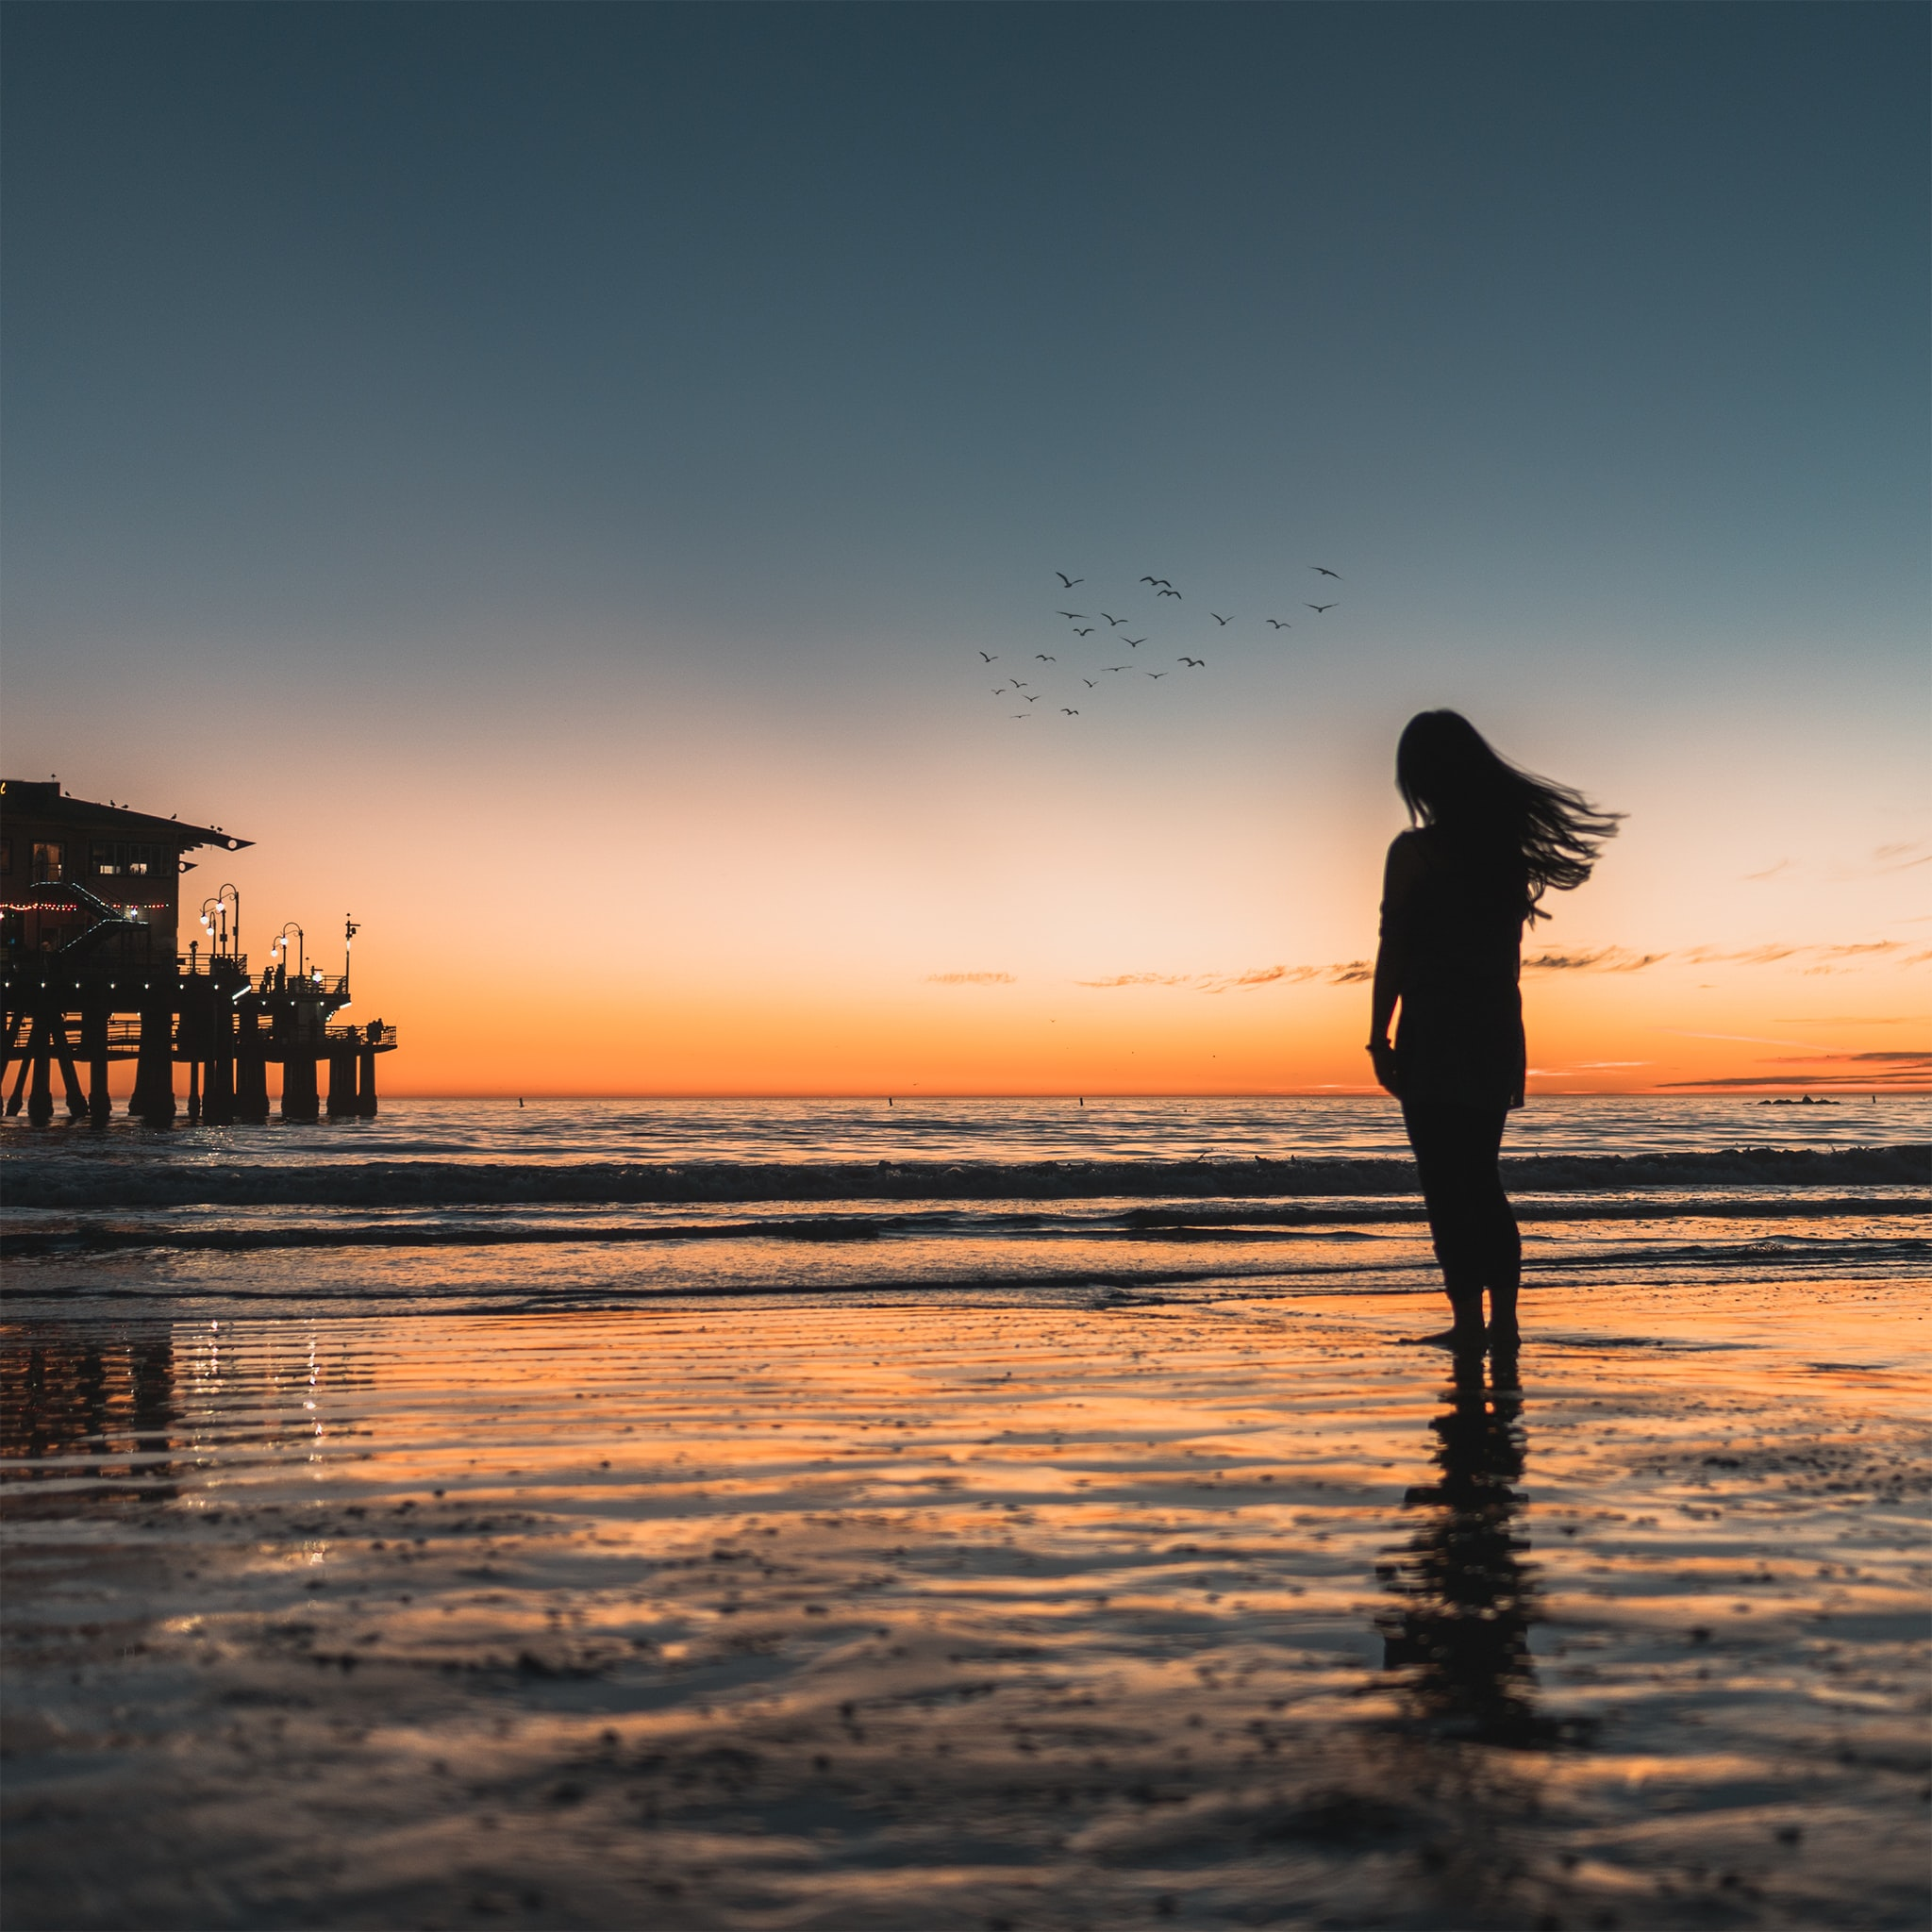 The silhouette of a woman walking out into the ocean as a metaphor for transition and optimism